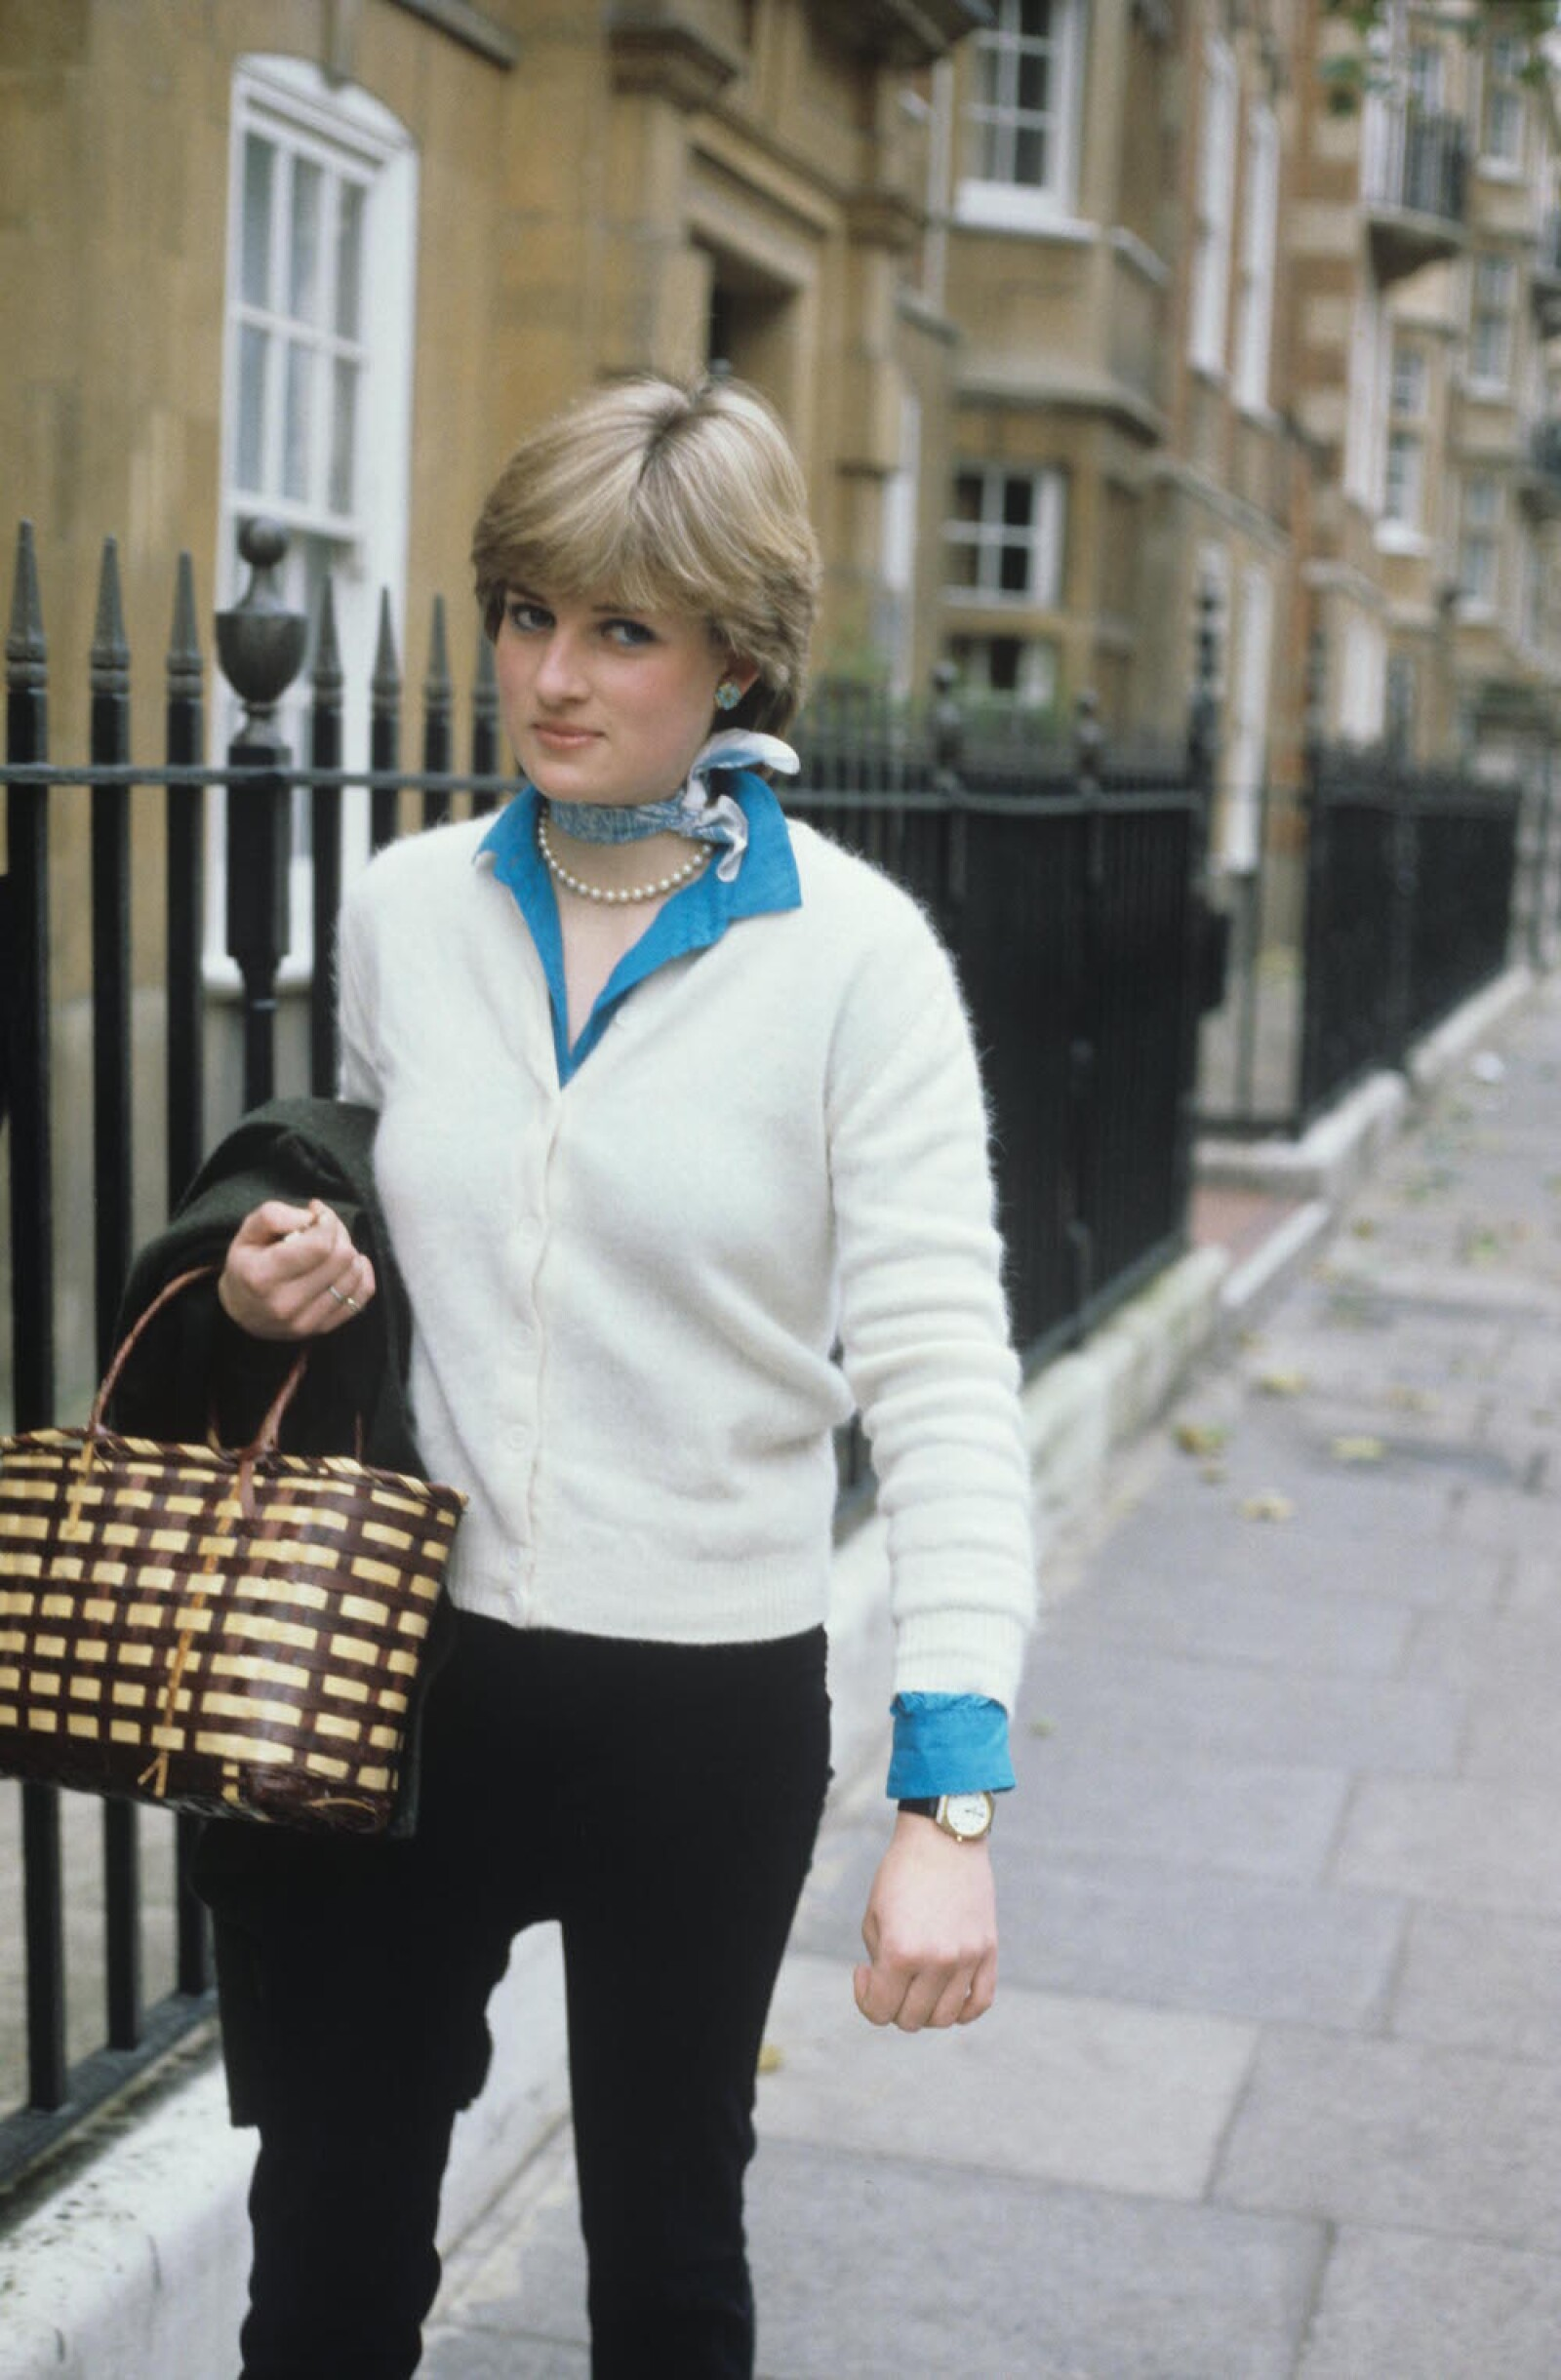 PRINCESS DIANA WHEN SHE WAS LADY DIANA SPENCER, WORKING IN A NURSERY, BRITAIN - 1980